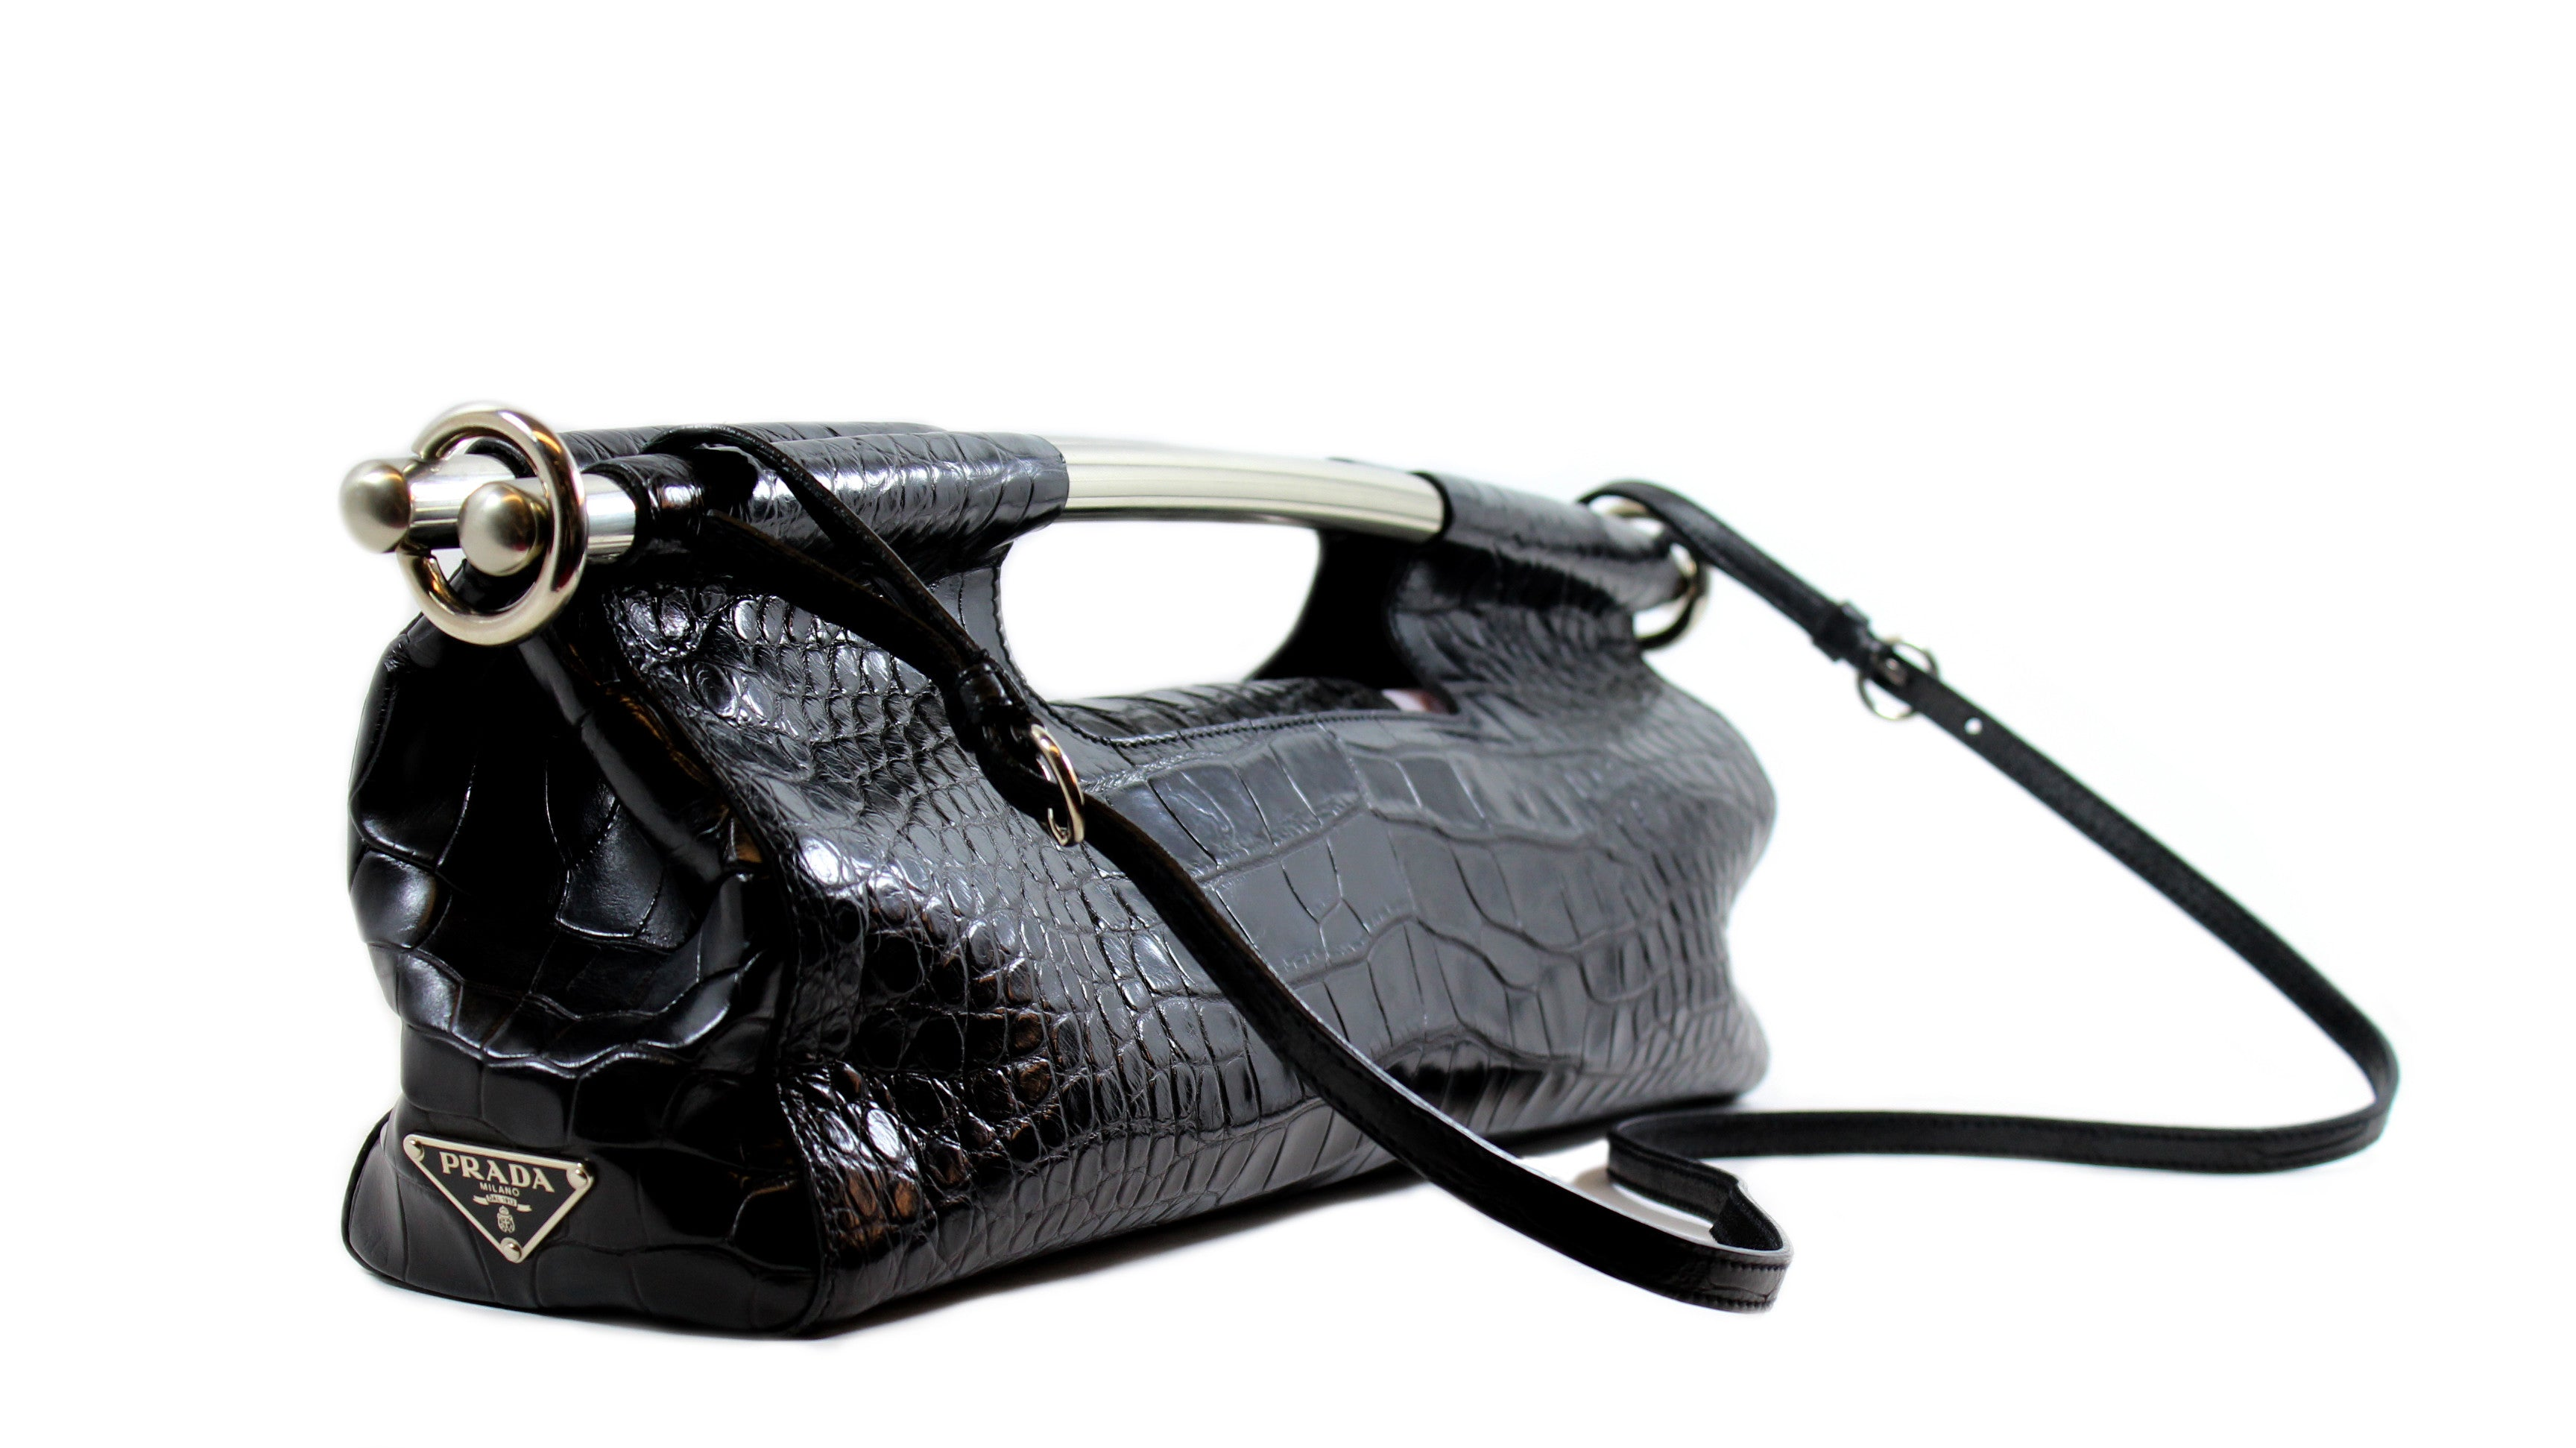 'Sold' Prada Black Cocco Bars Reptile Handbag